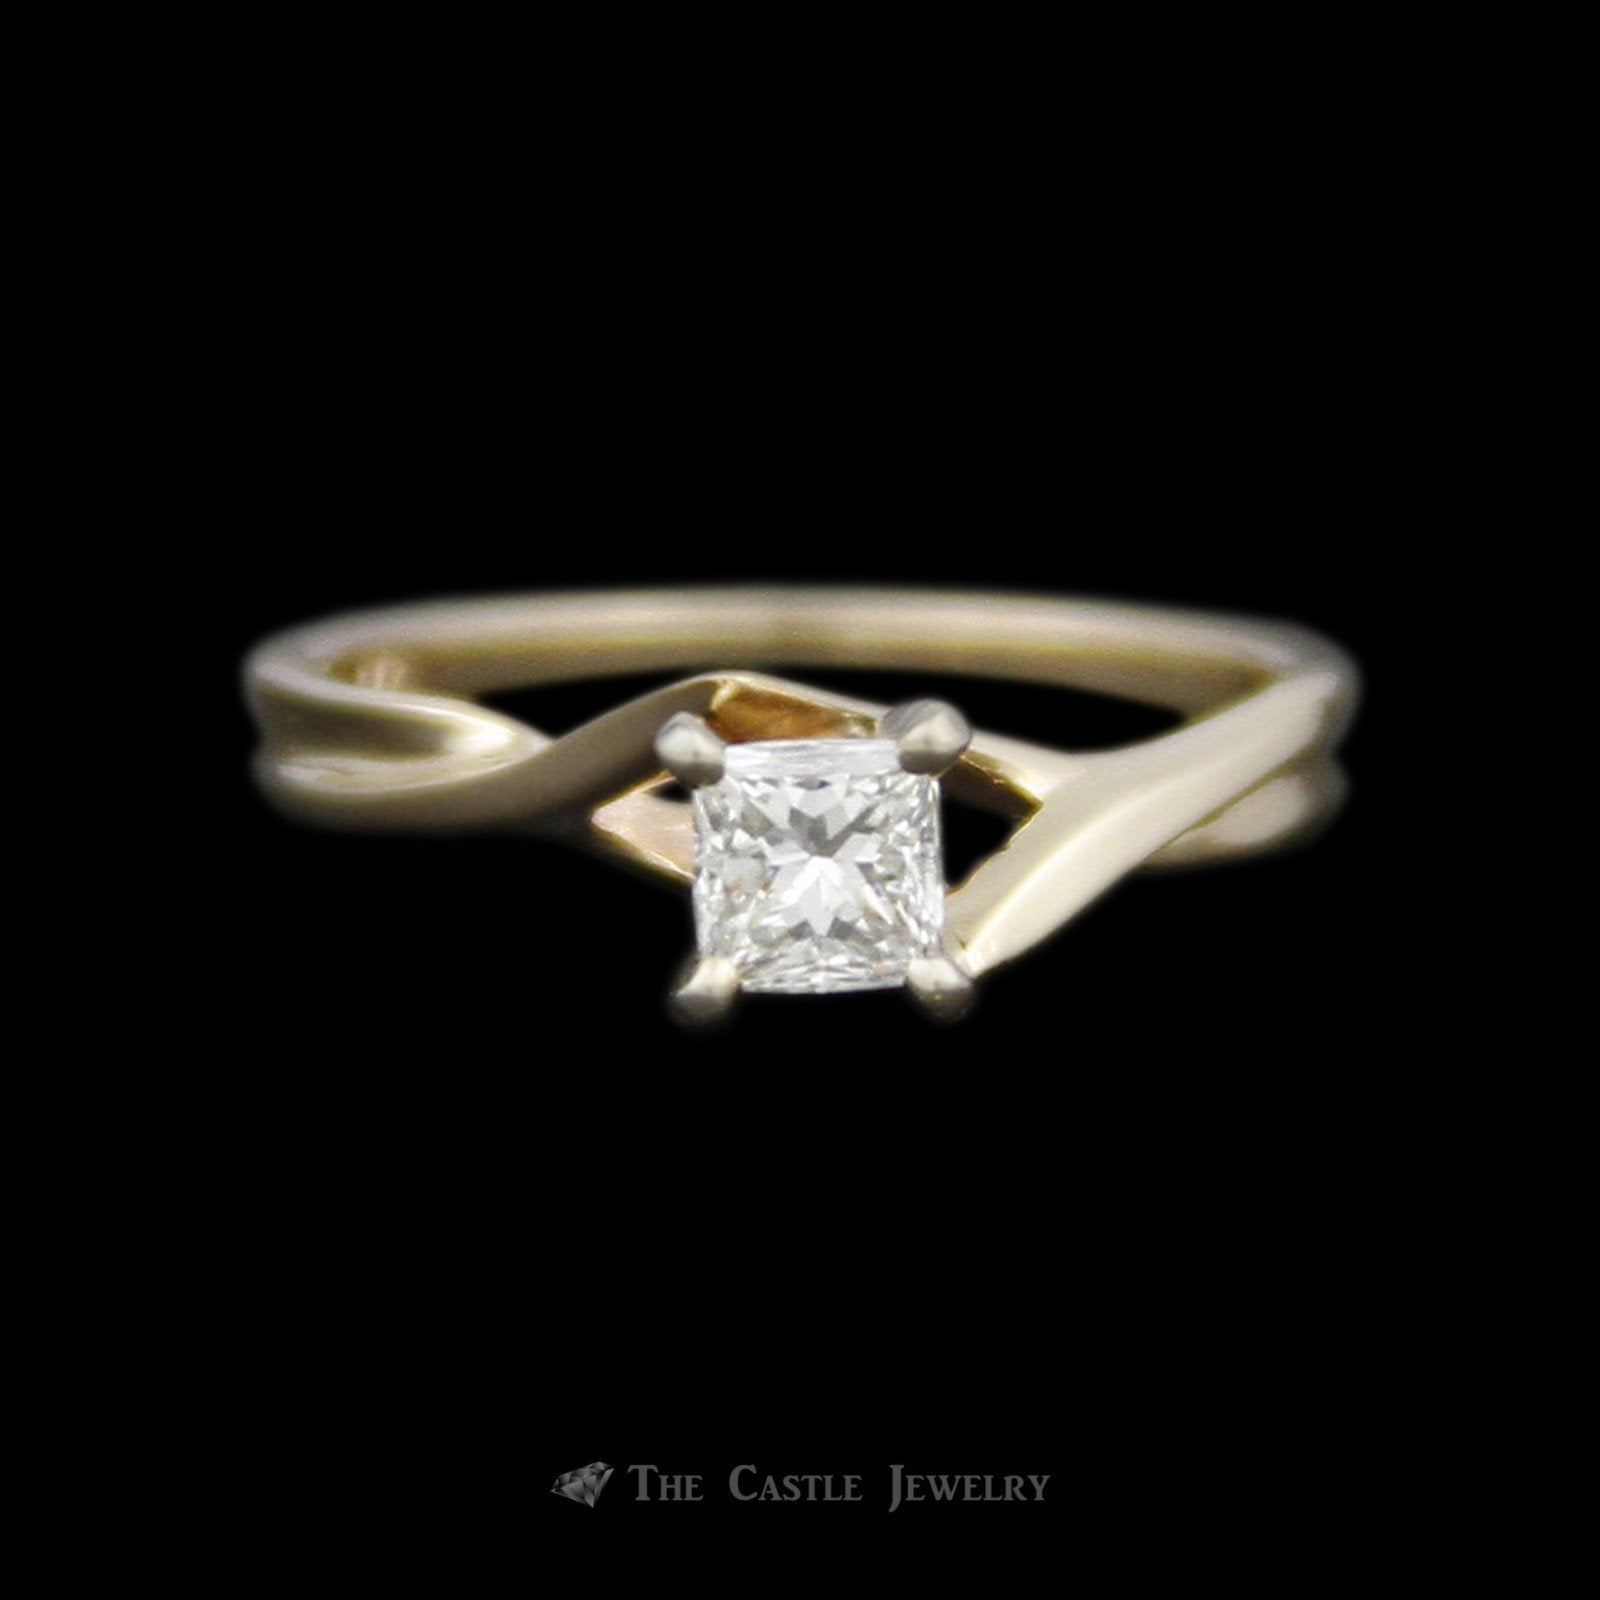 Princess Cut Diamond Solitaire Engagement Ring with Cross Over Design Mounting